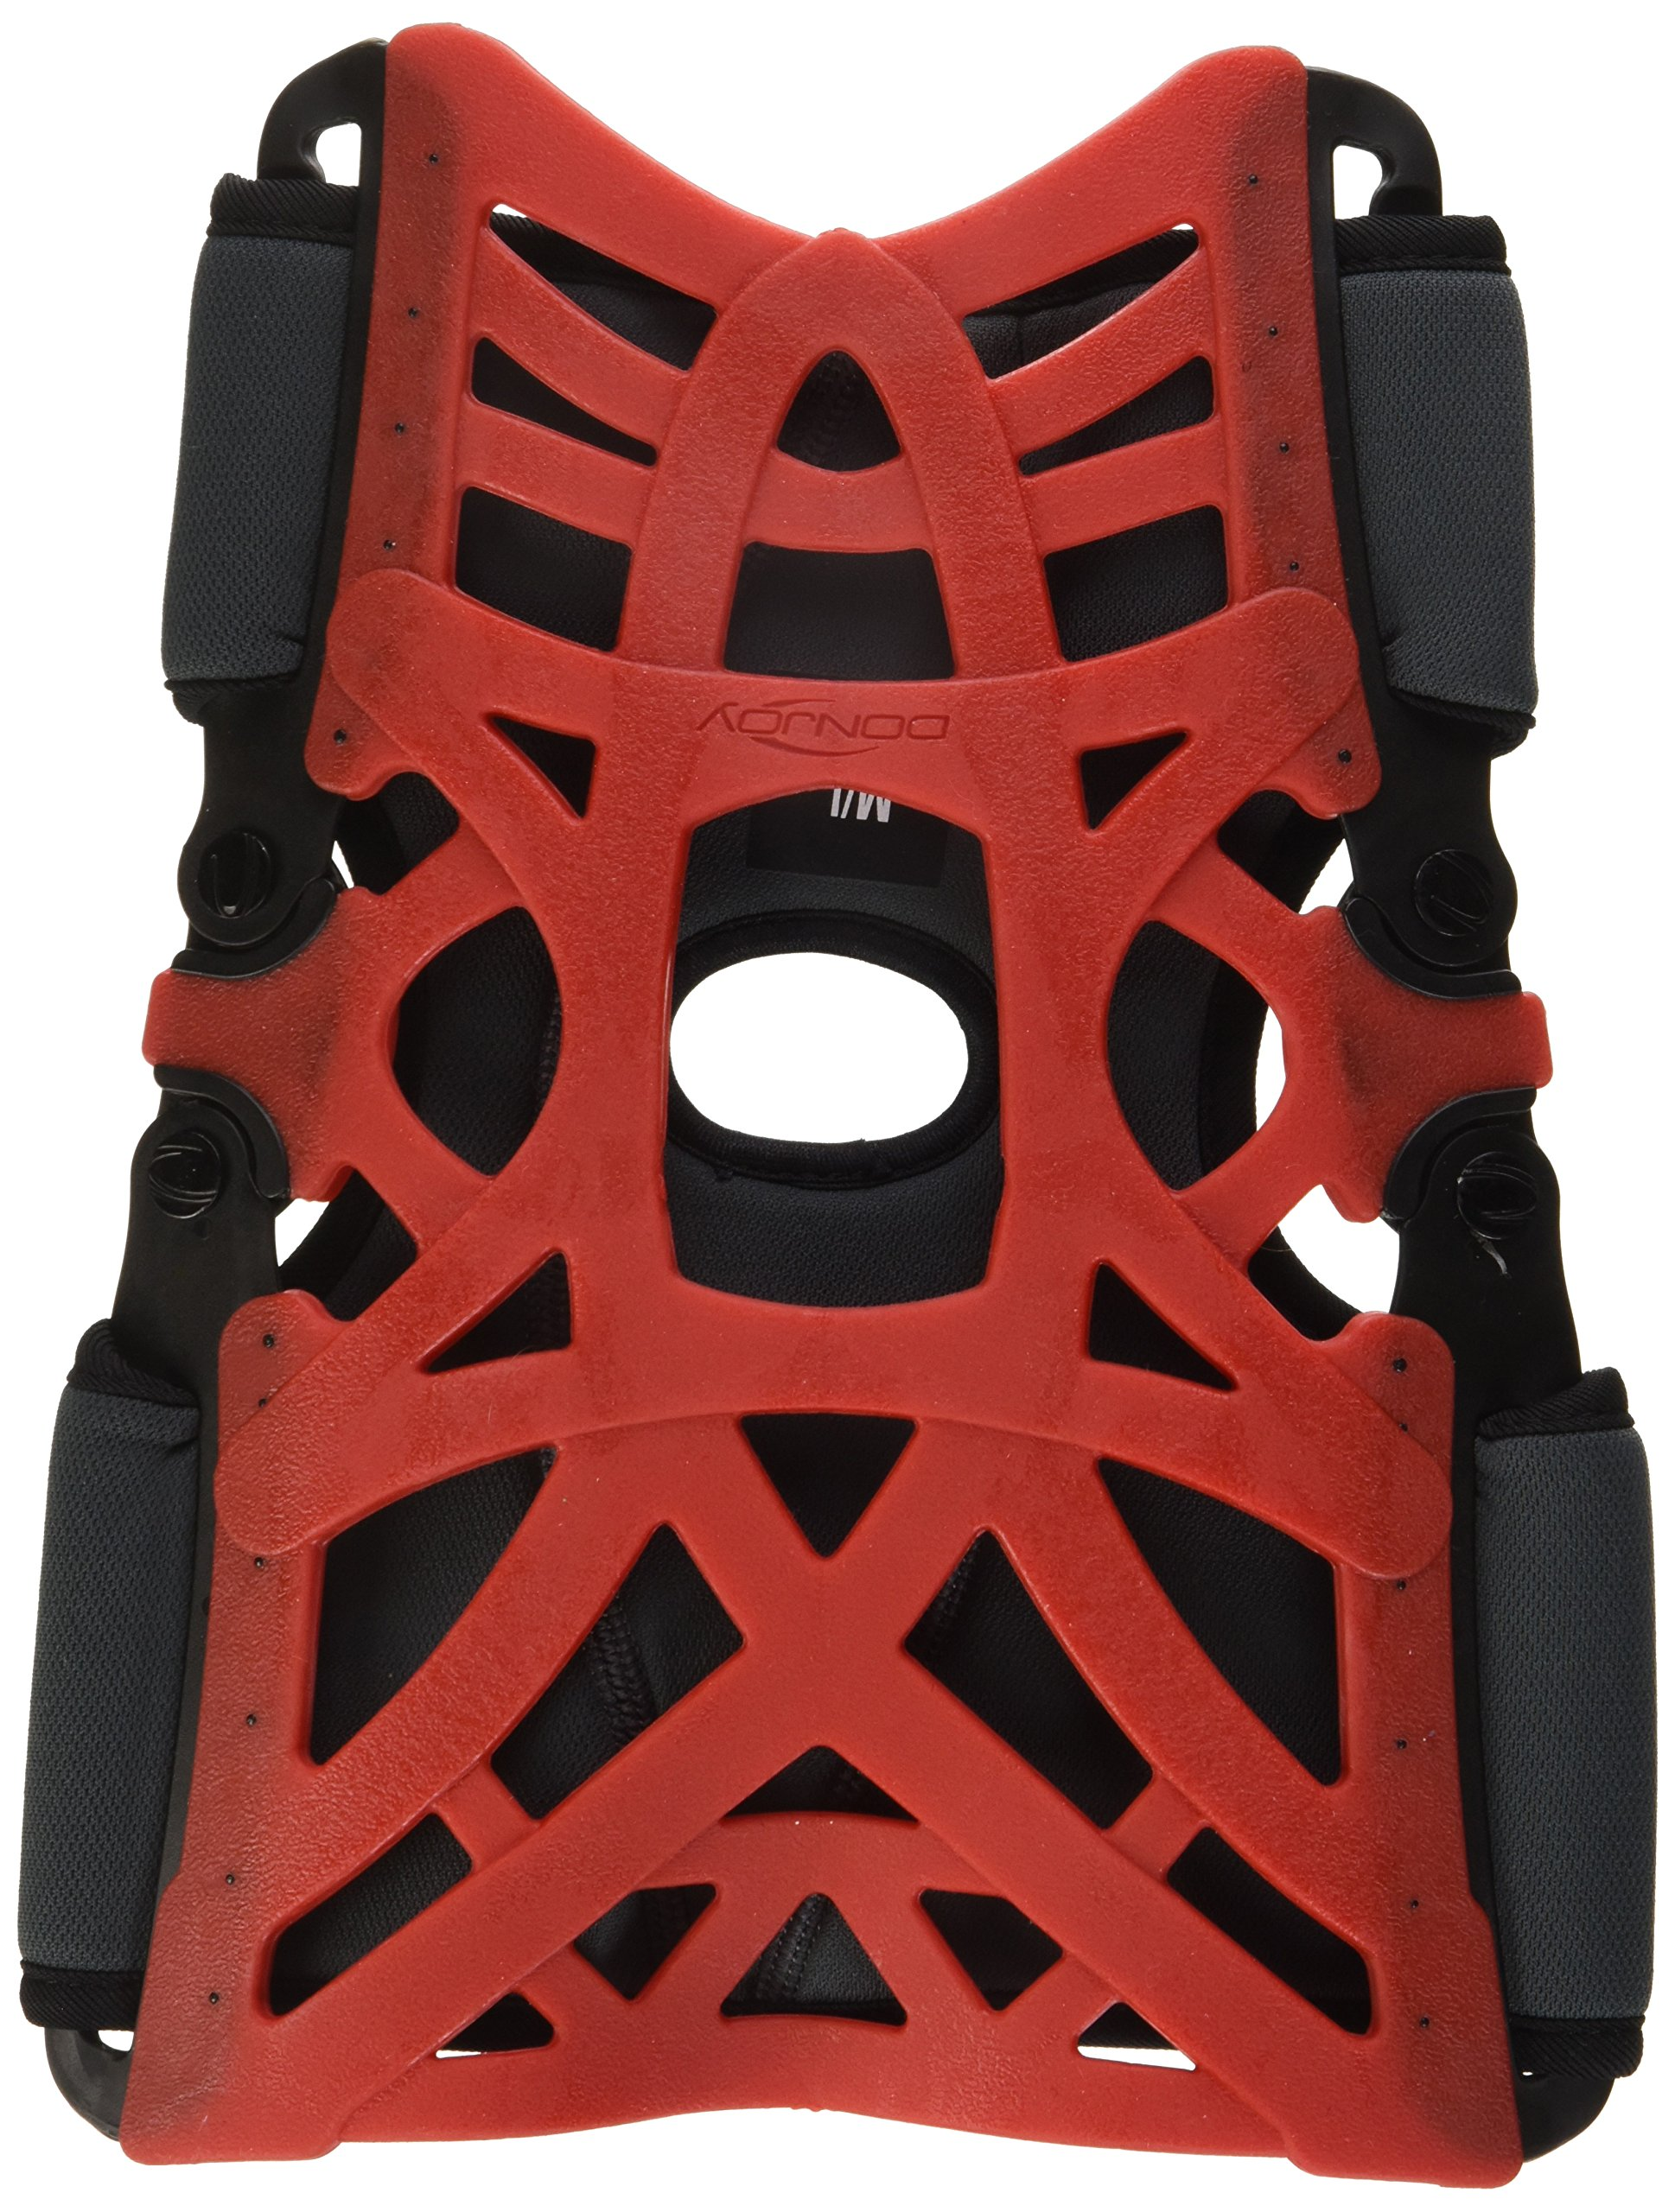 DonJoy Reaction Web Knee Support Brace with Compression Undersleeve: Red, Medium/Large